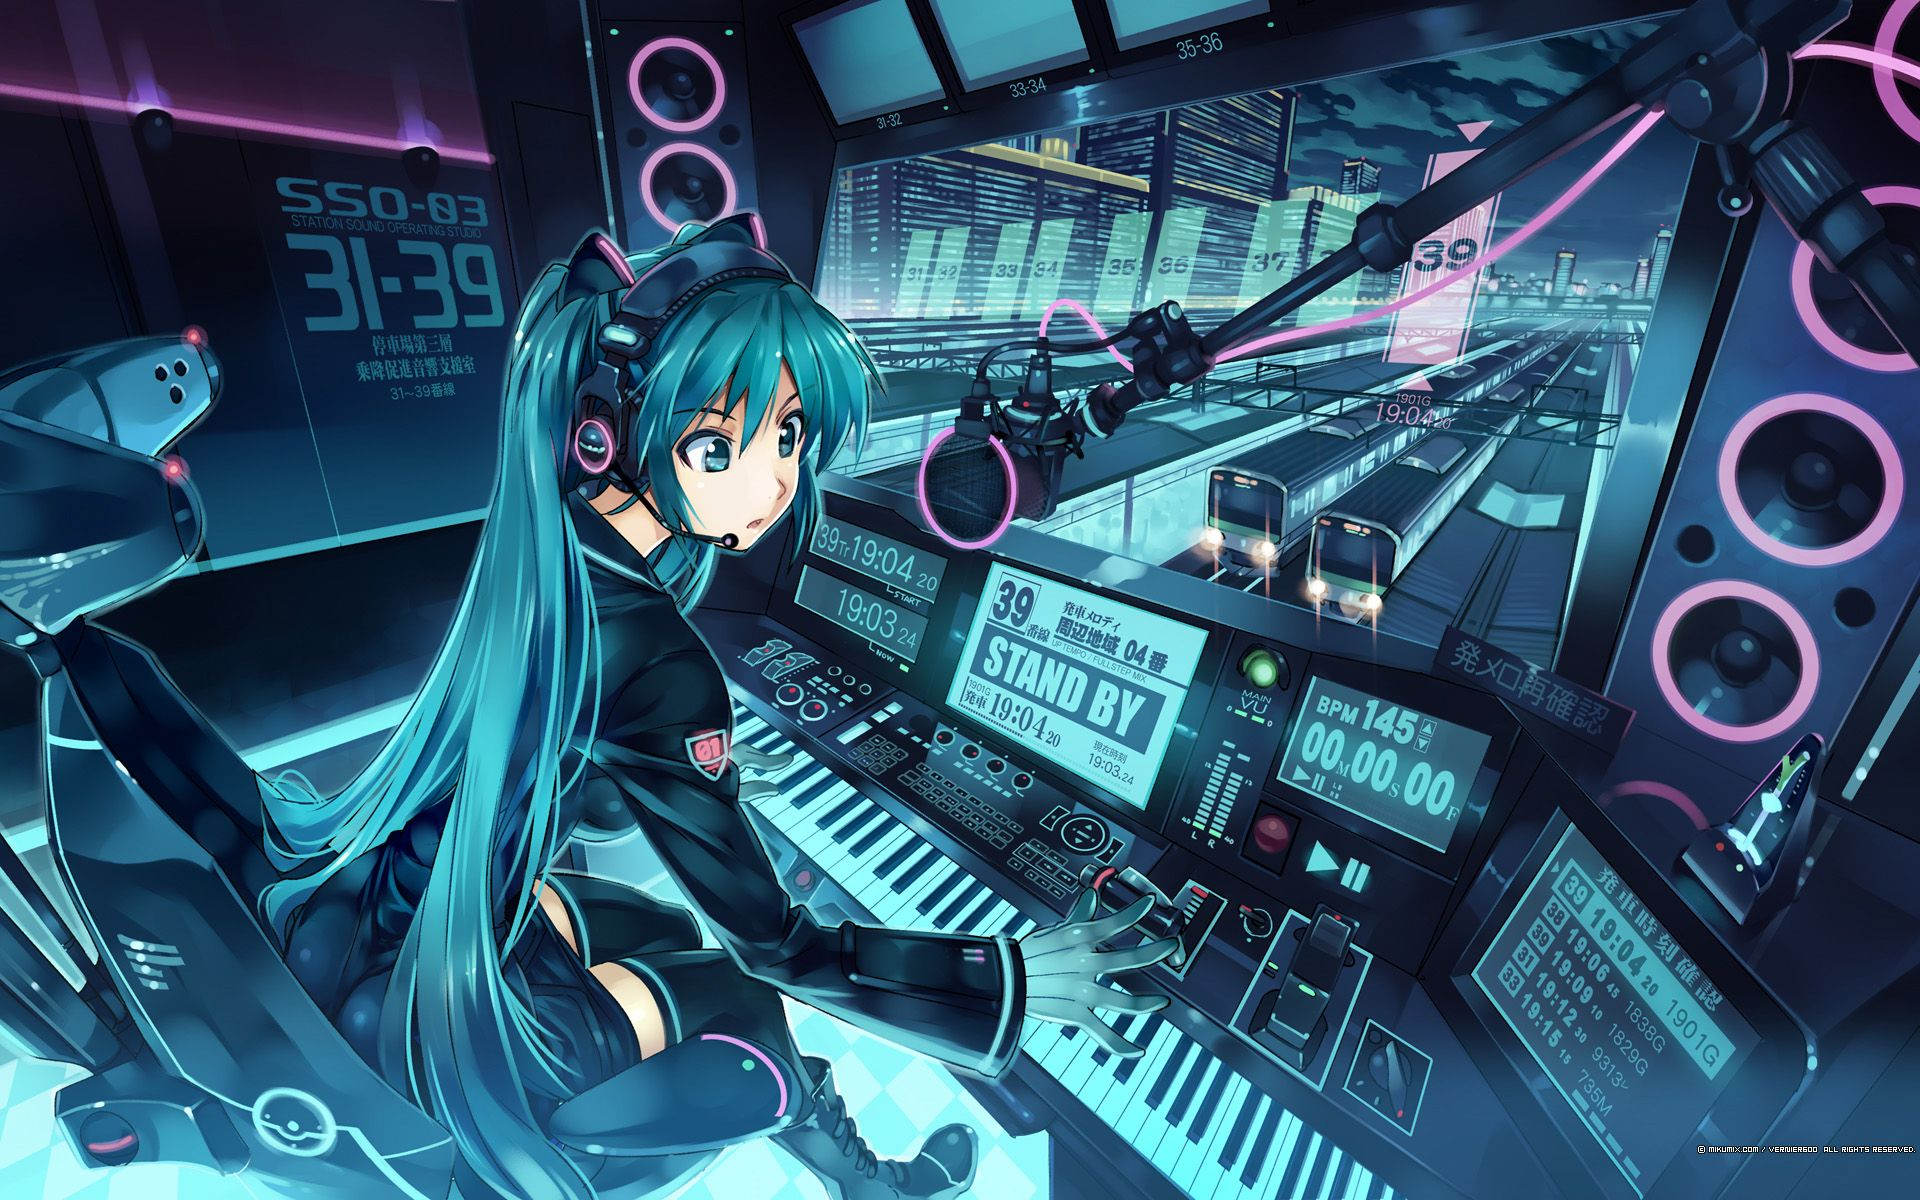 Girls Wearing Headphones Wallpaper 1920x1200 Id 23832 Cool Anime Wallpapers Hd Anime Wallpapers Anime Background